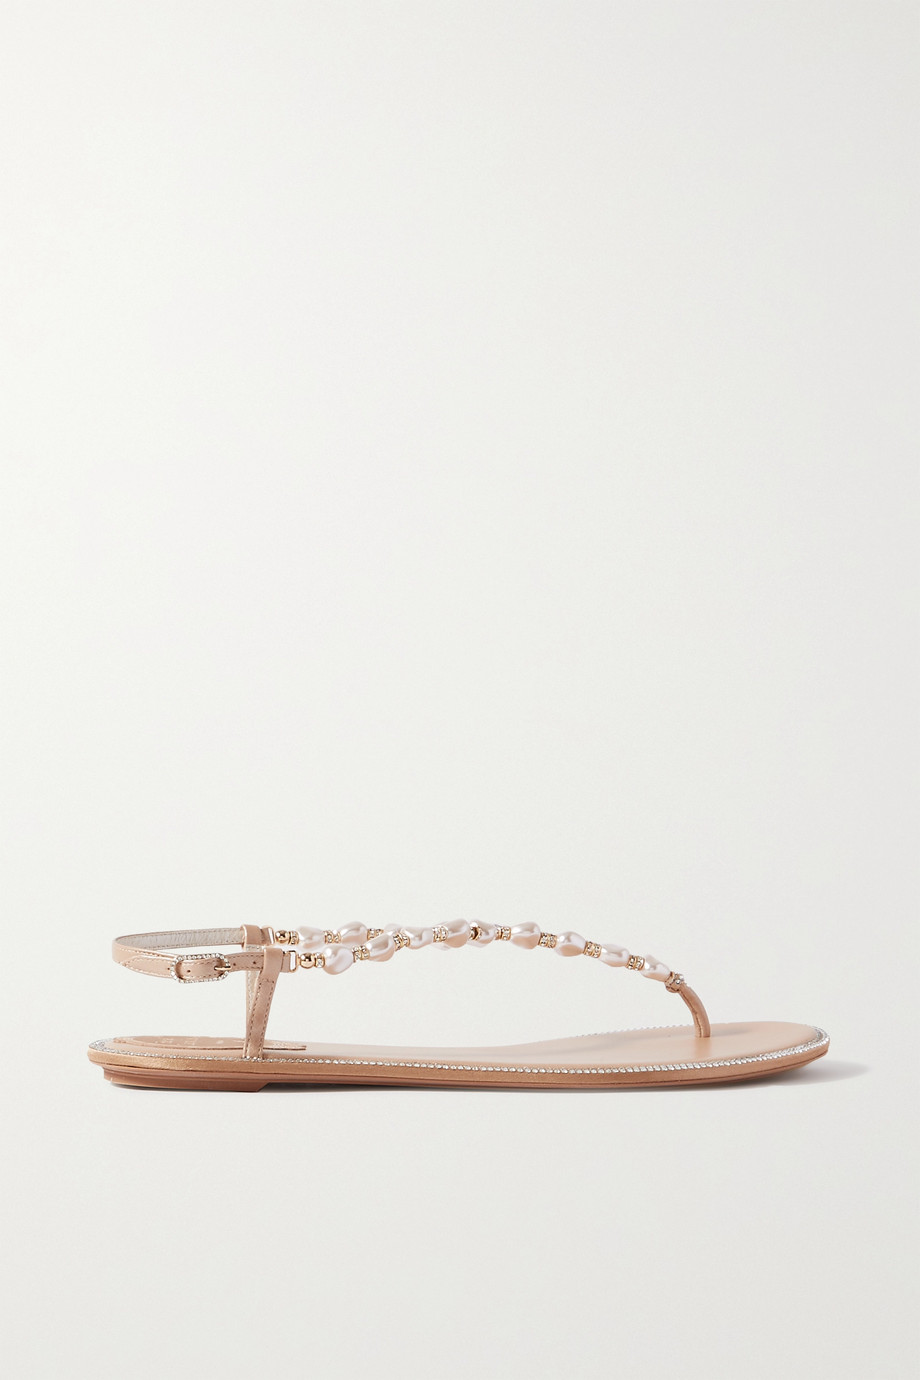 René Caovilla Cecile embellished leather sandals